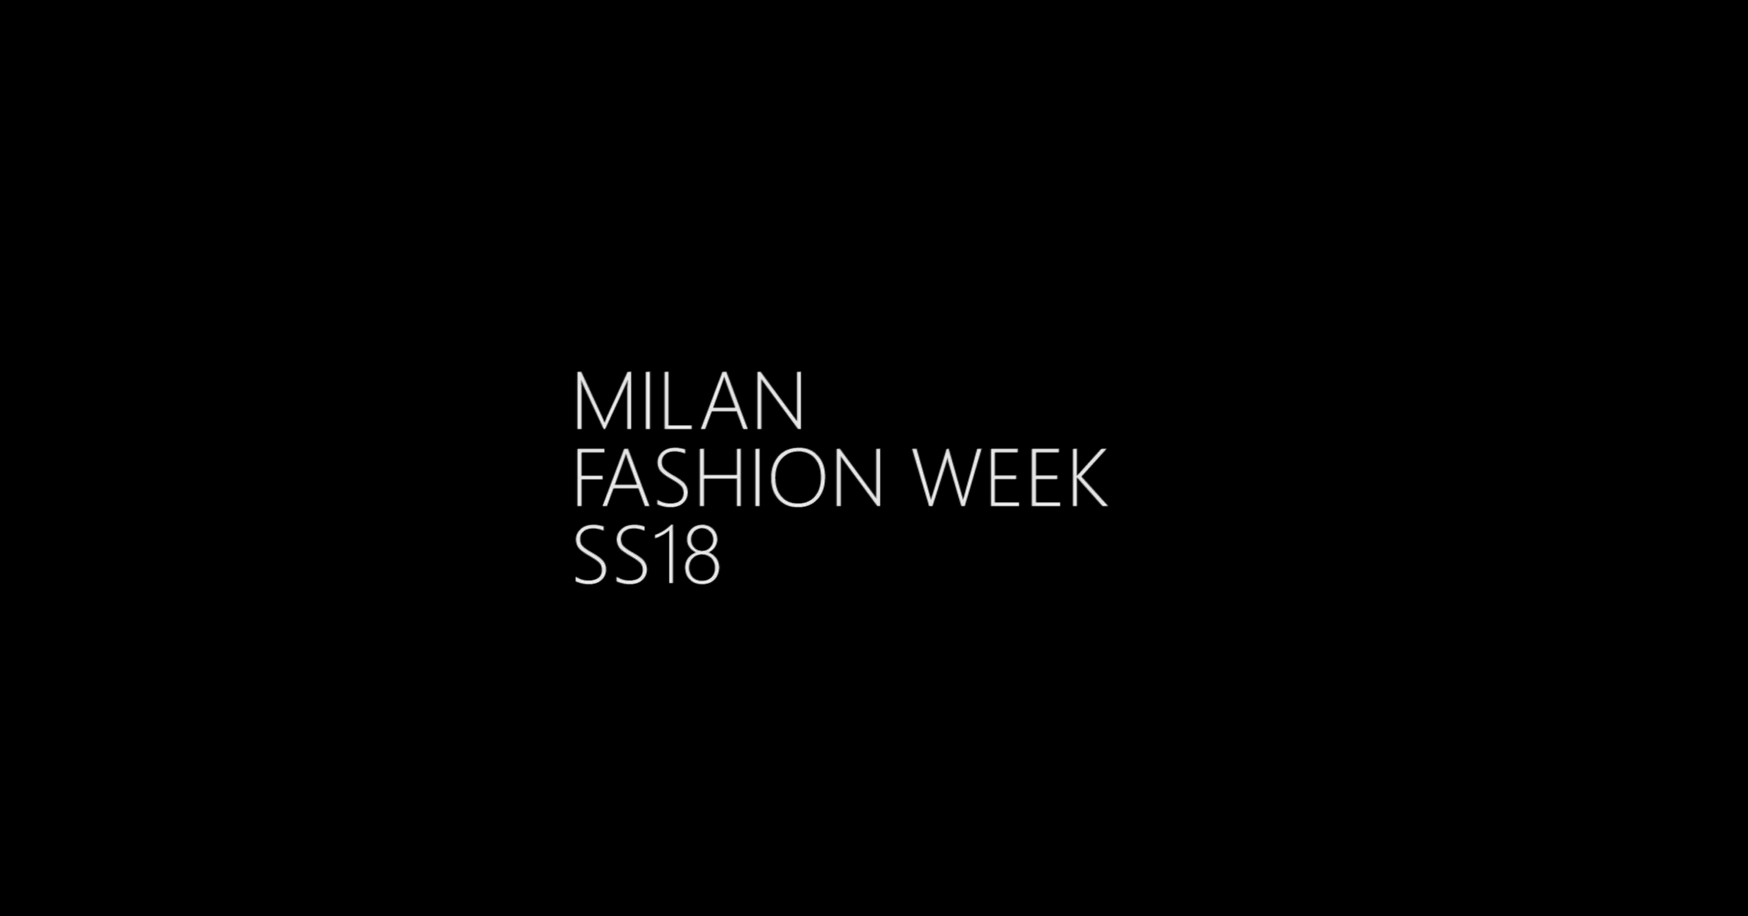 MILAN FASHION WEEK SS18